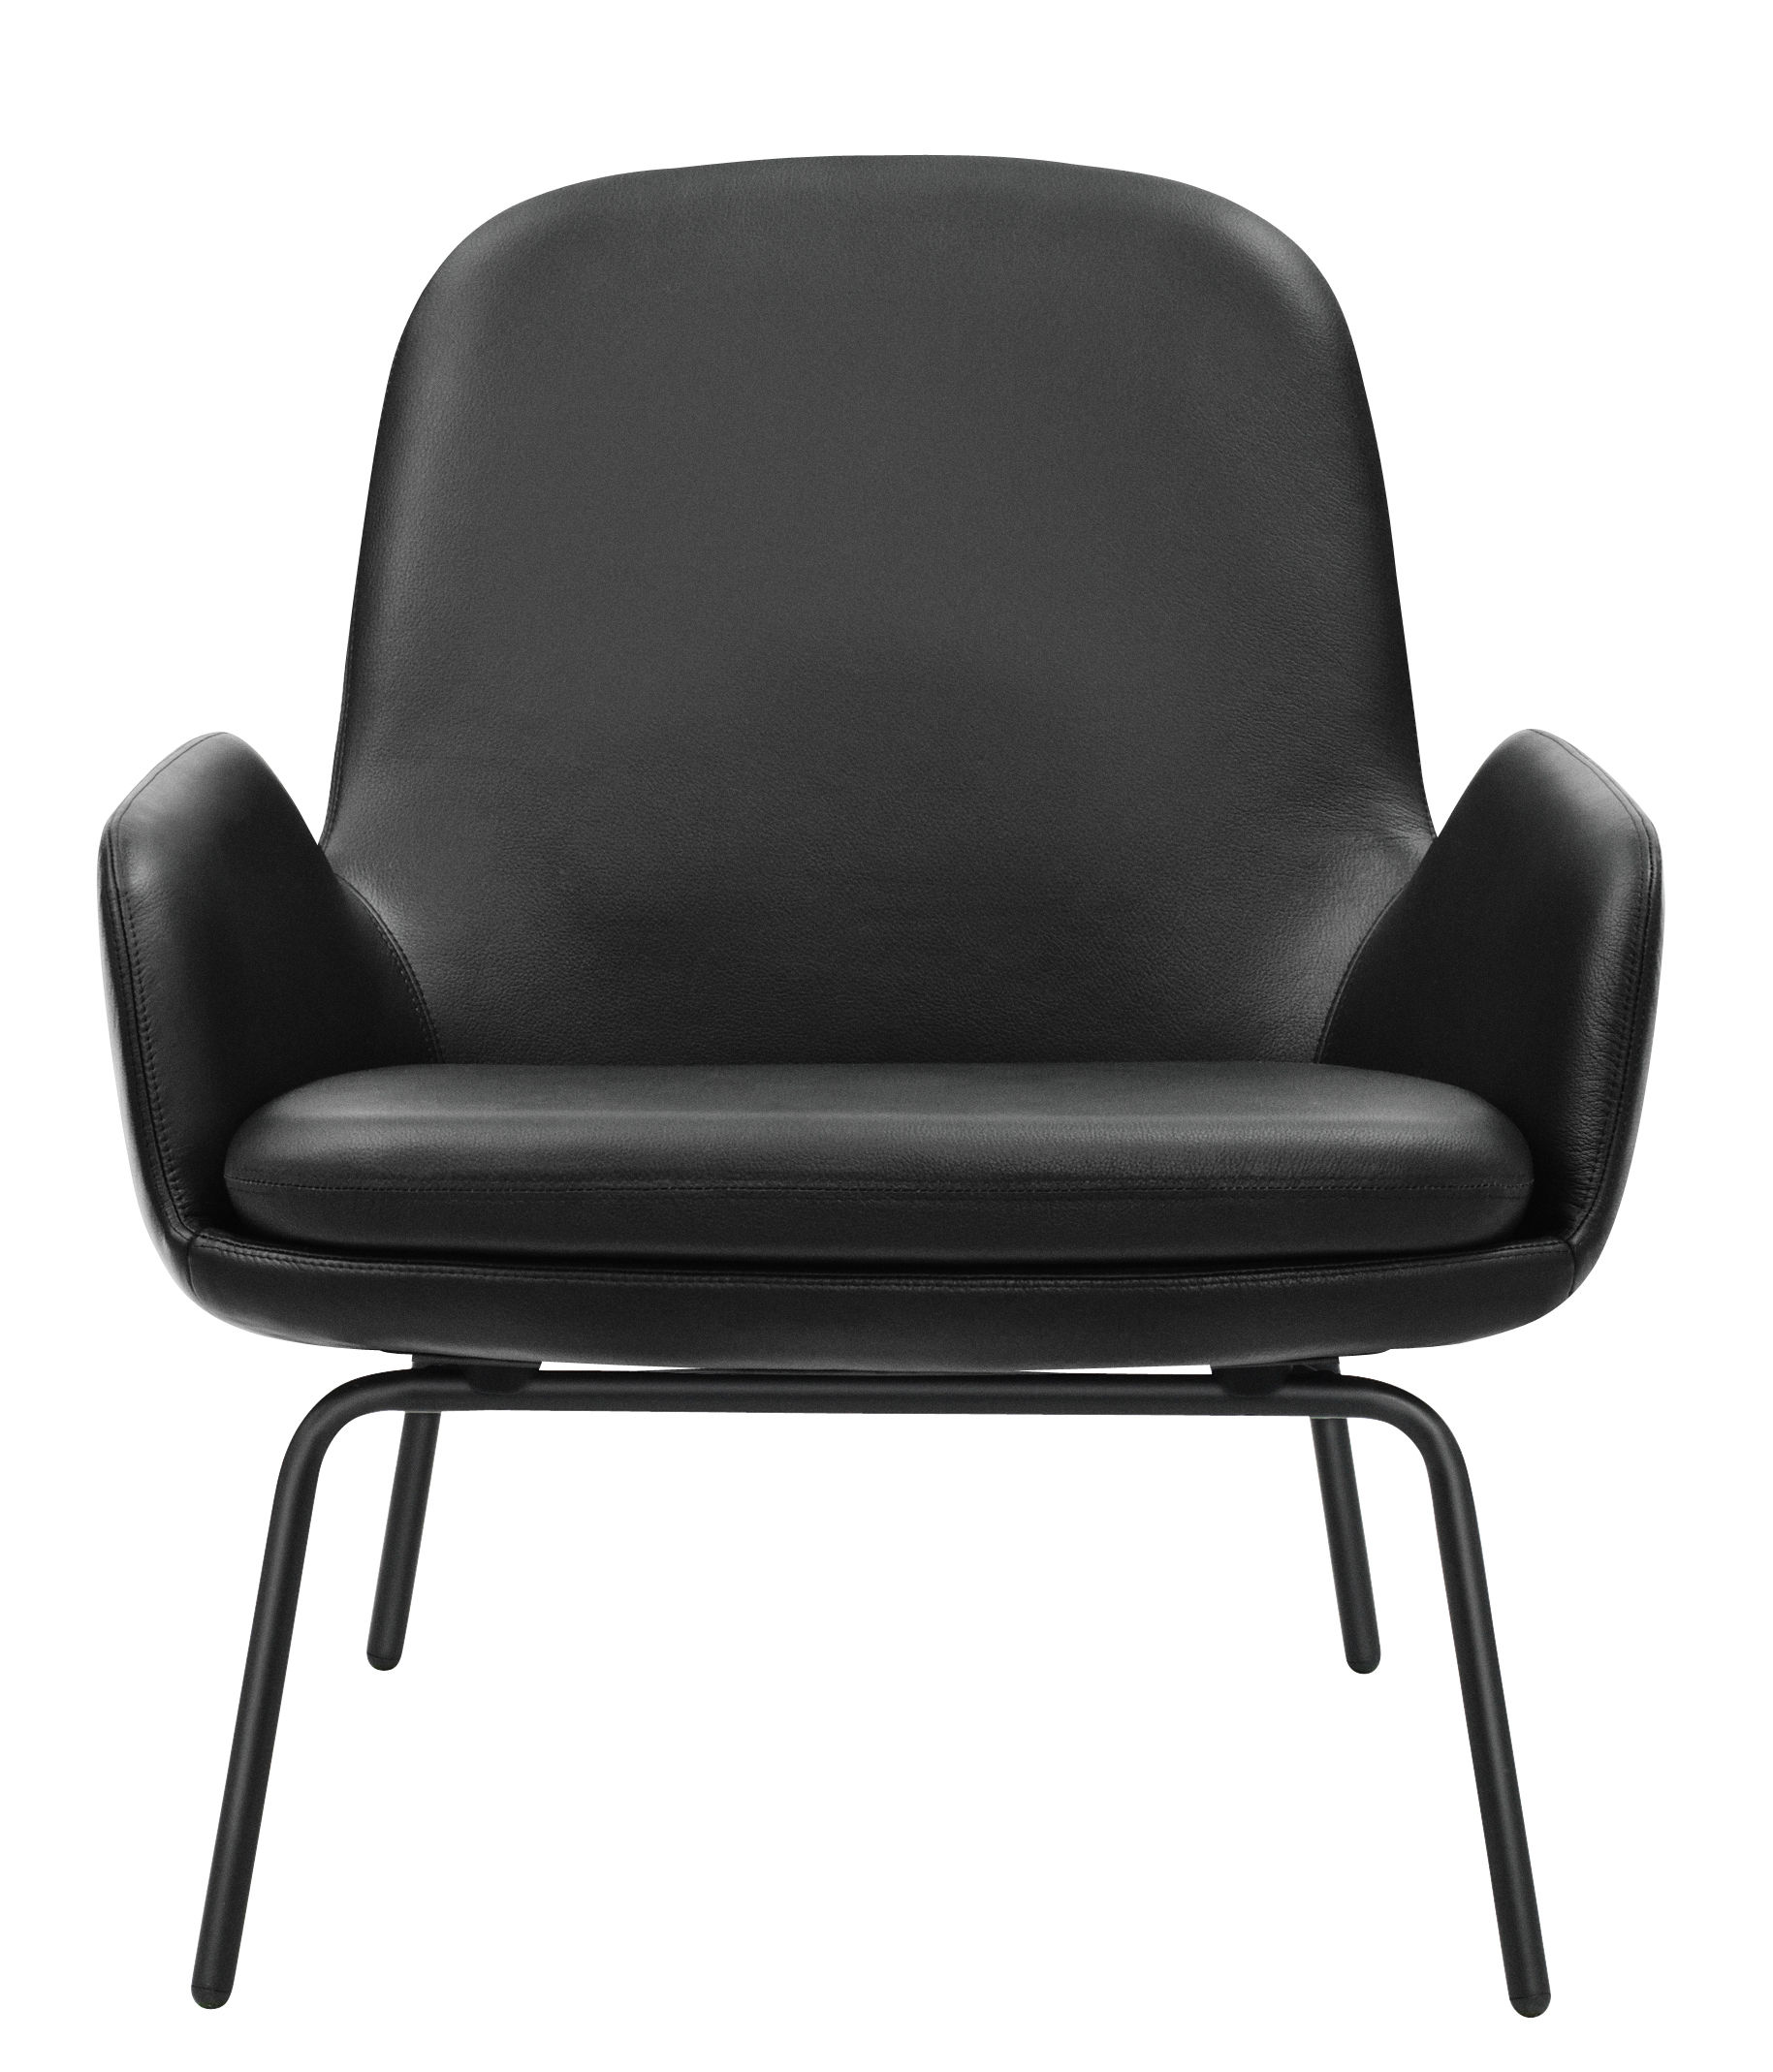 fauteuil era dossier bas cuir m tal cuir noir pieds noirs normann copenhagen. Black Bedroom Furniture Sets. Home Design Ideas